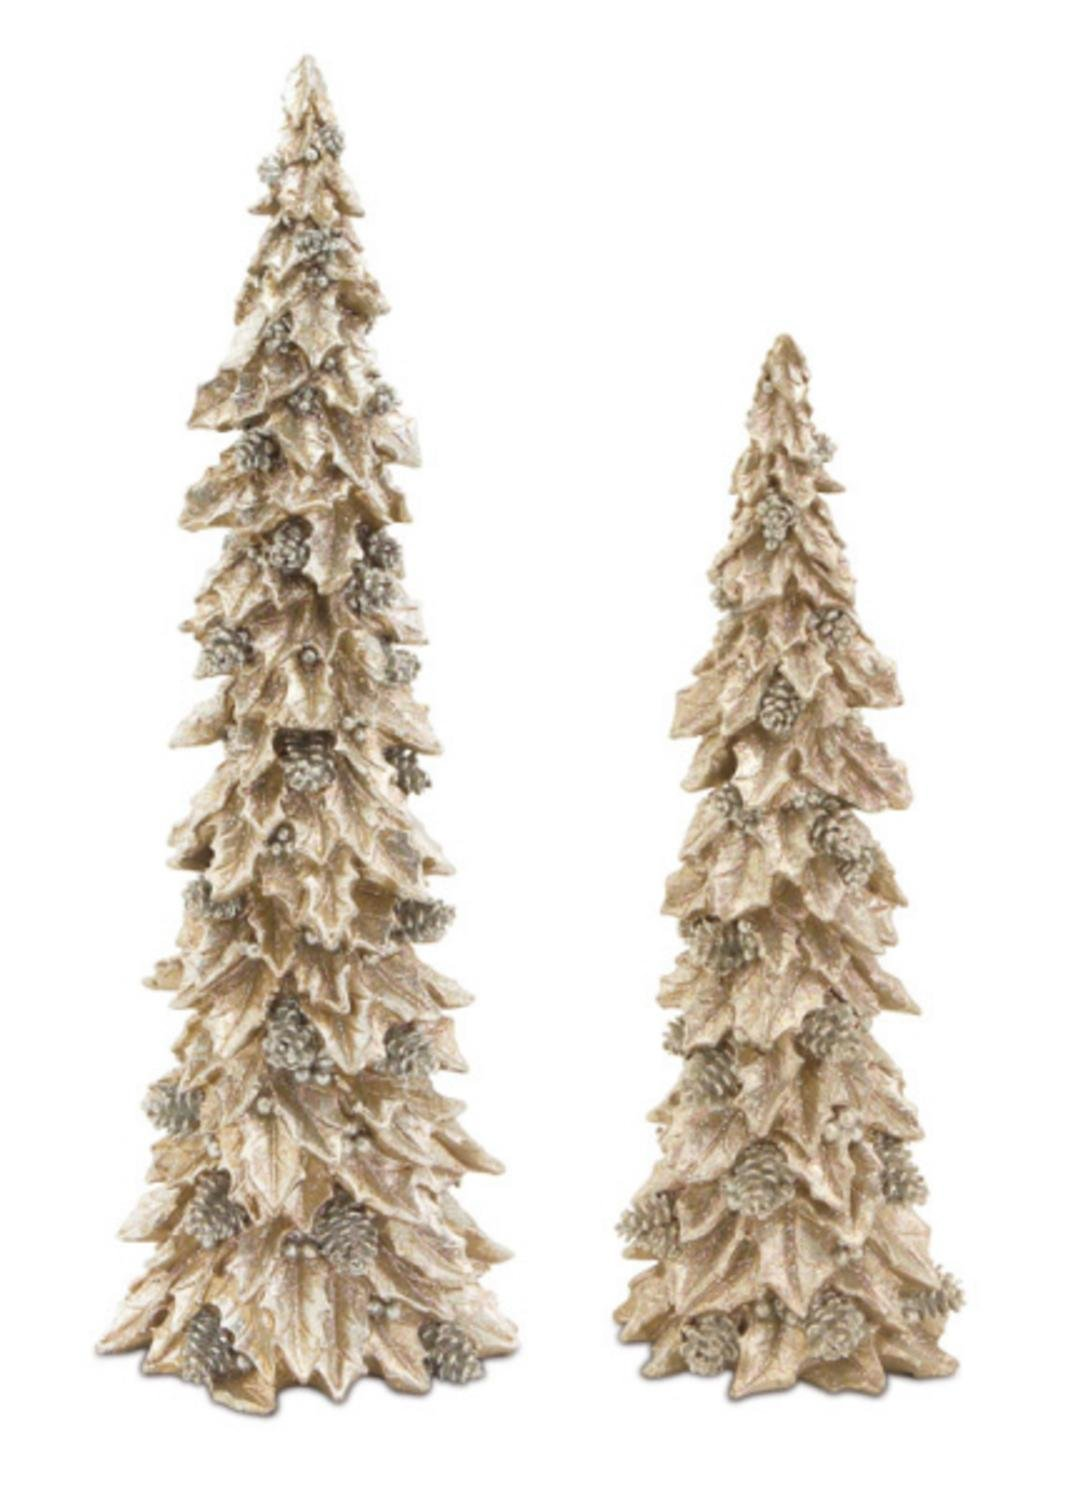 amazoncom pack of 2 glittered gold and silver holly trees with pine cones table top christmas decorations 19 home kitchen - Gold Christmas Decorations